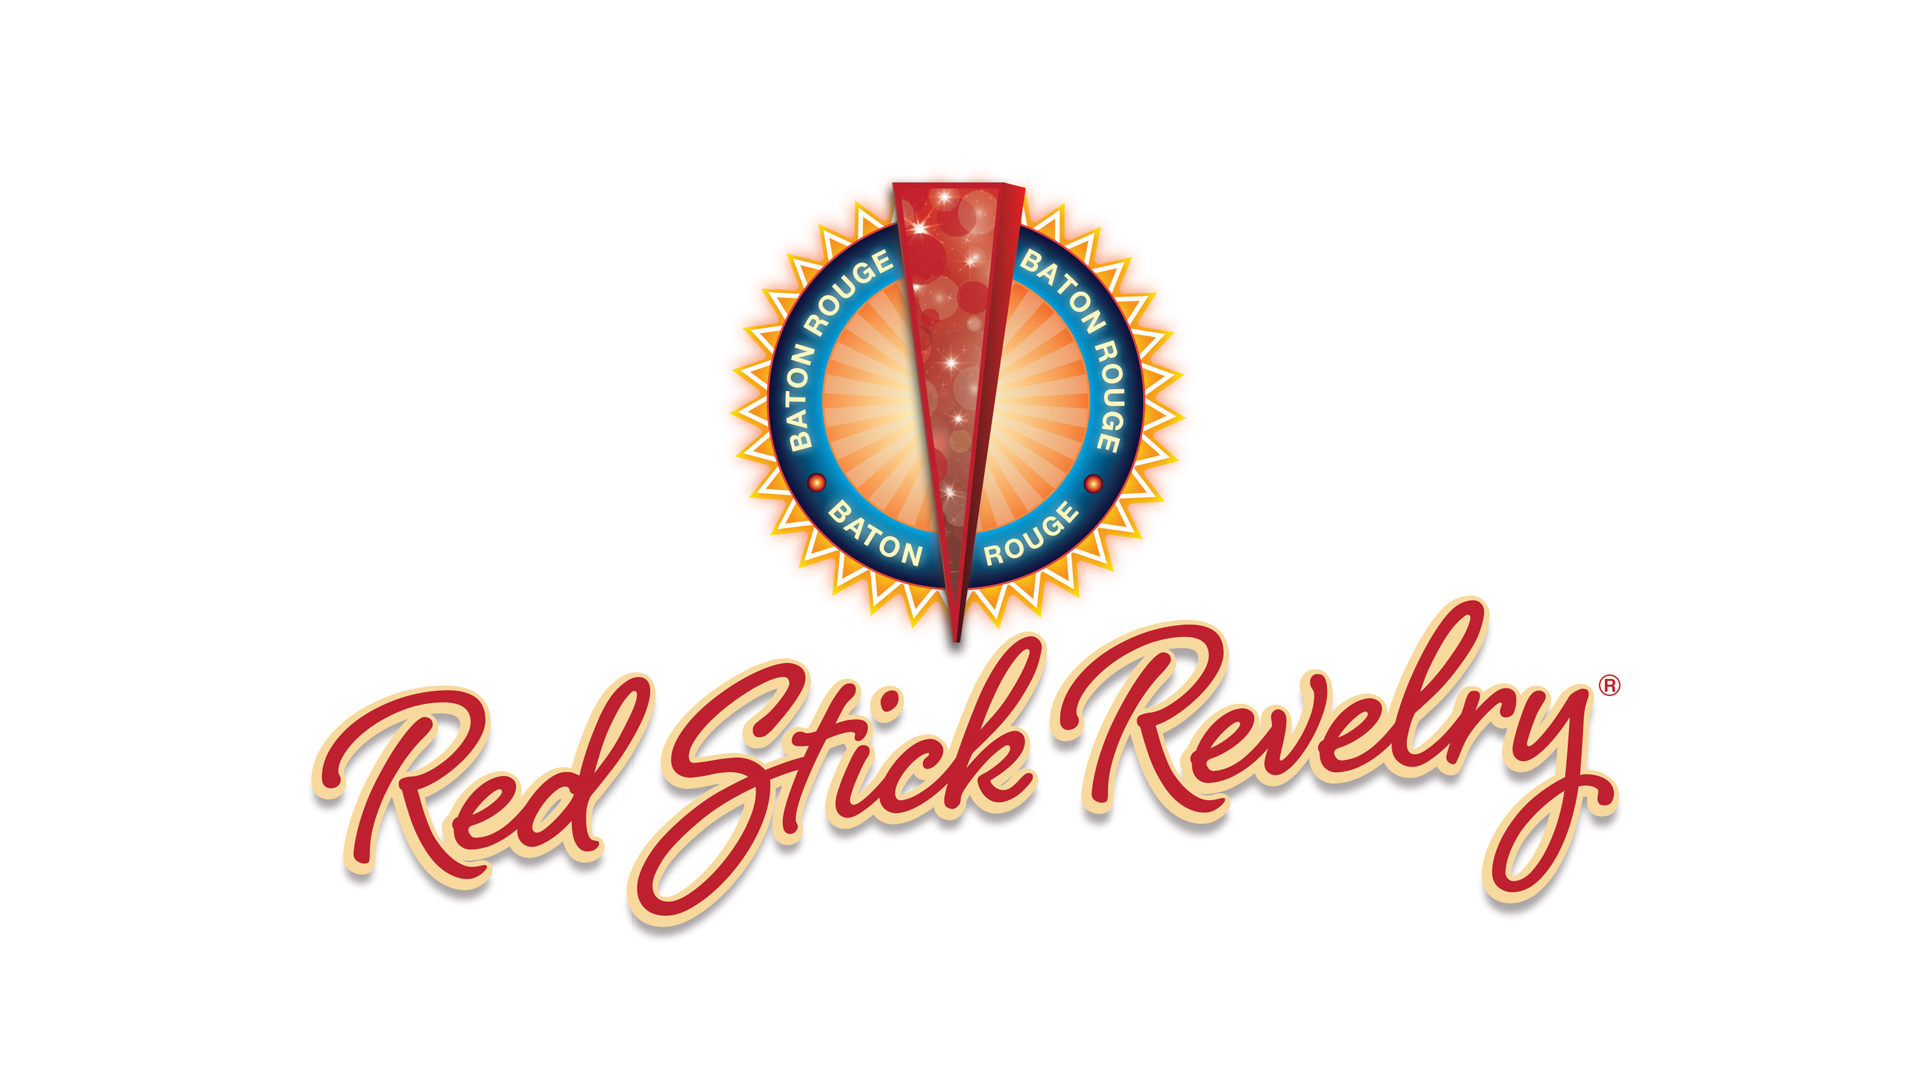 Compose Digital Design | Graphic Design, Baton Rouge | Red Stick Revelry Logo